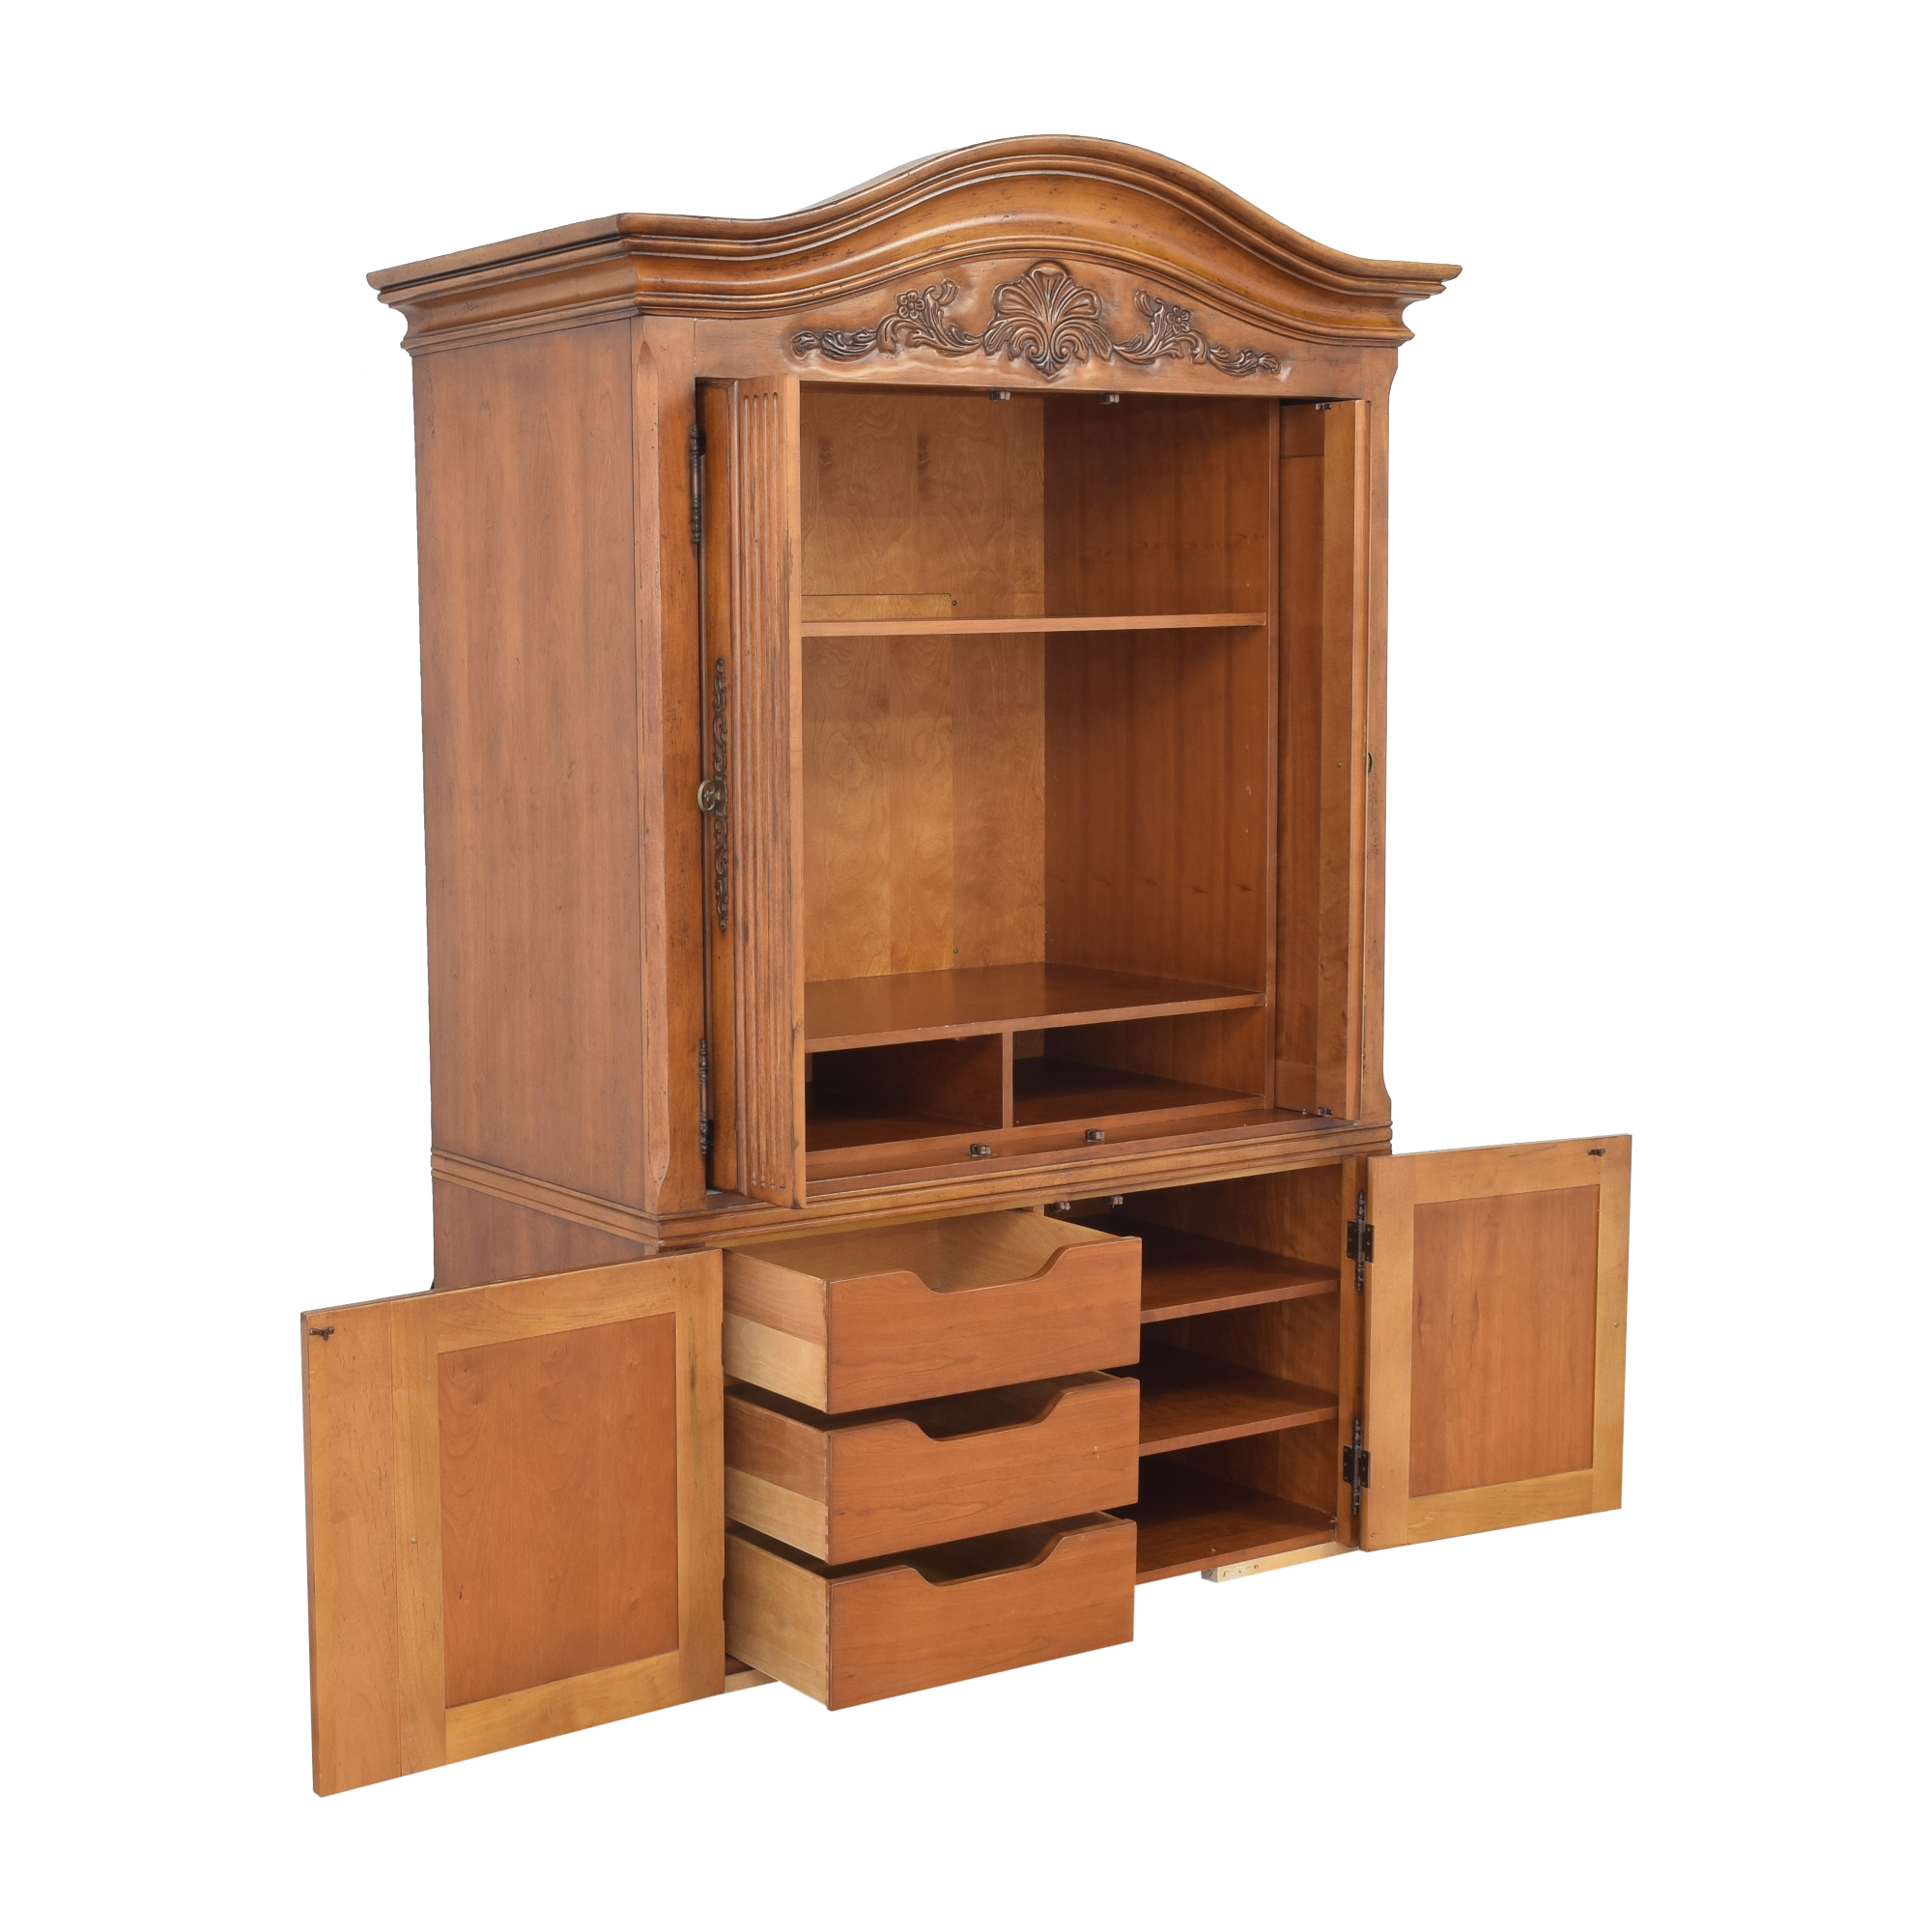 Century Furniture Century Furniture Media Armoire with Drawers on sale